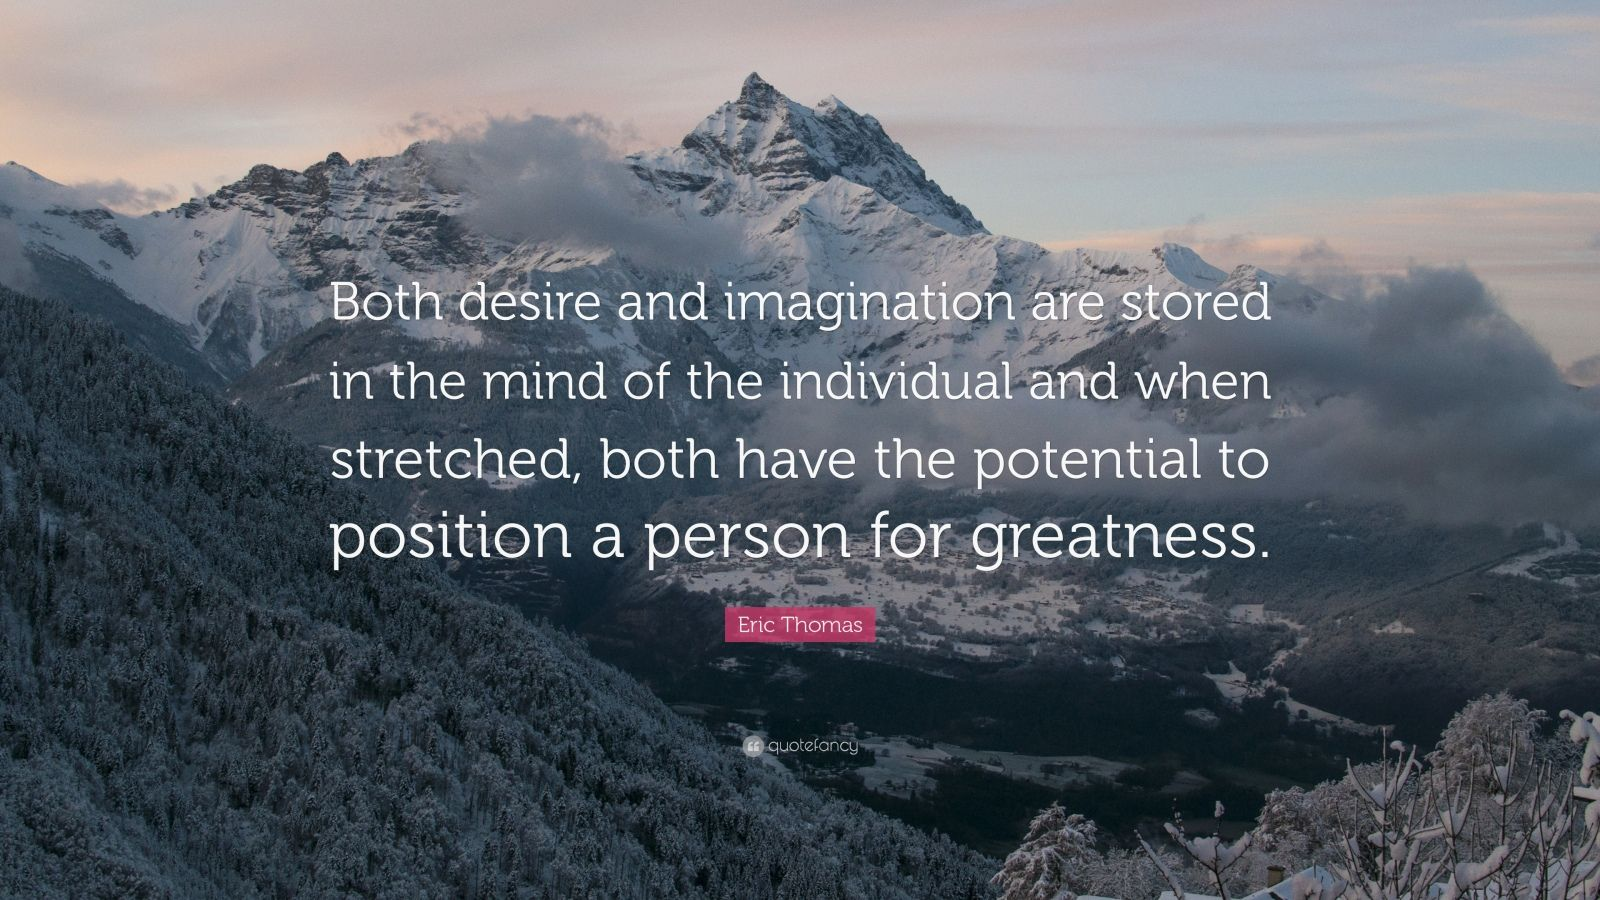 """Eric Thomas Quote: """"Both desire and imagination are stored in the mind of the individual and when stretched, both have the potential to position a person for greatness."""""""